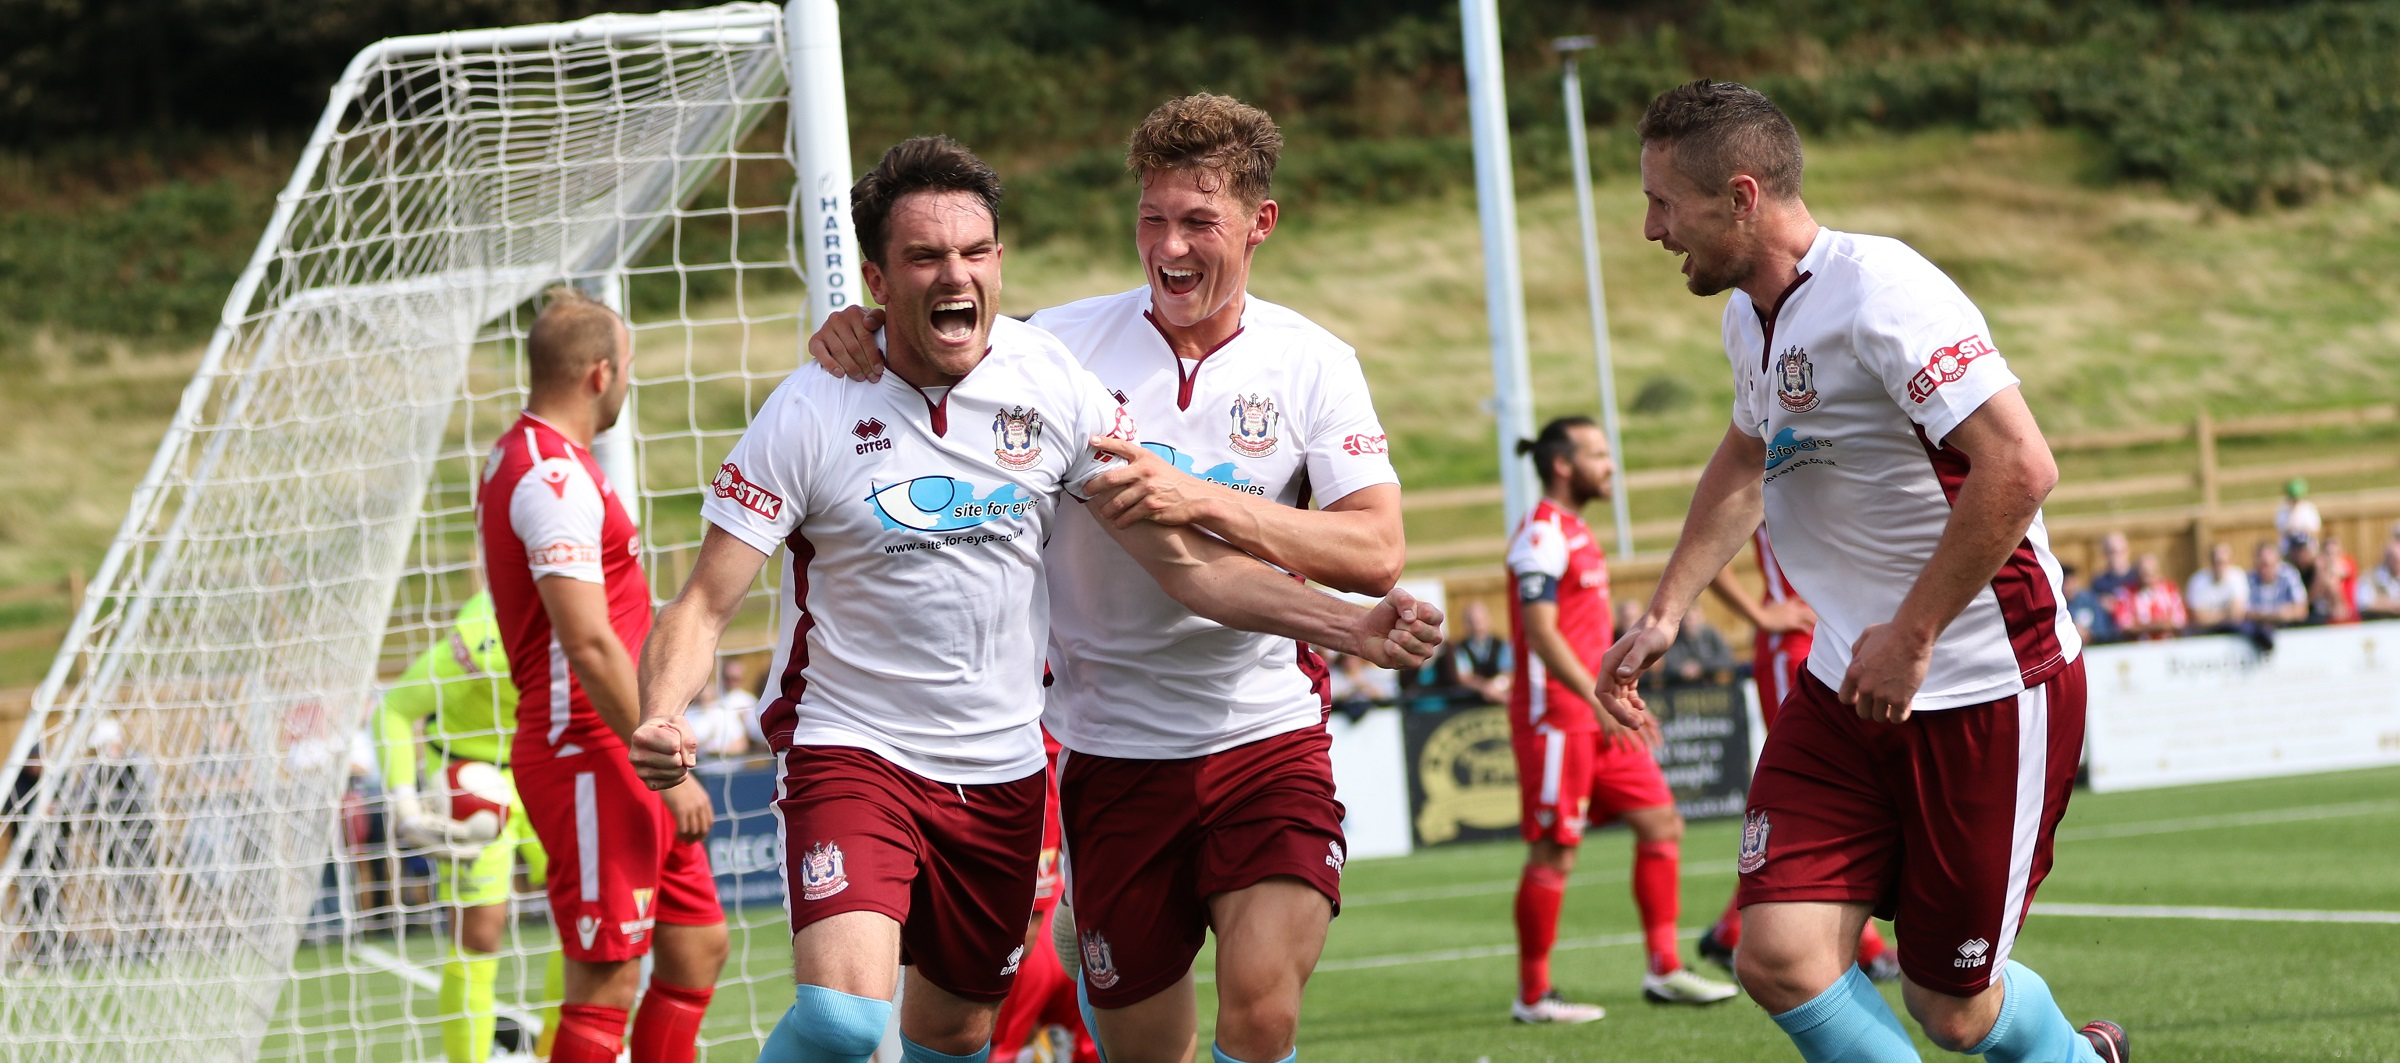 Match Preview: Scarborough Athletic vs South Shields, FA Trophy